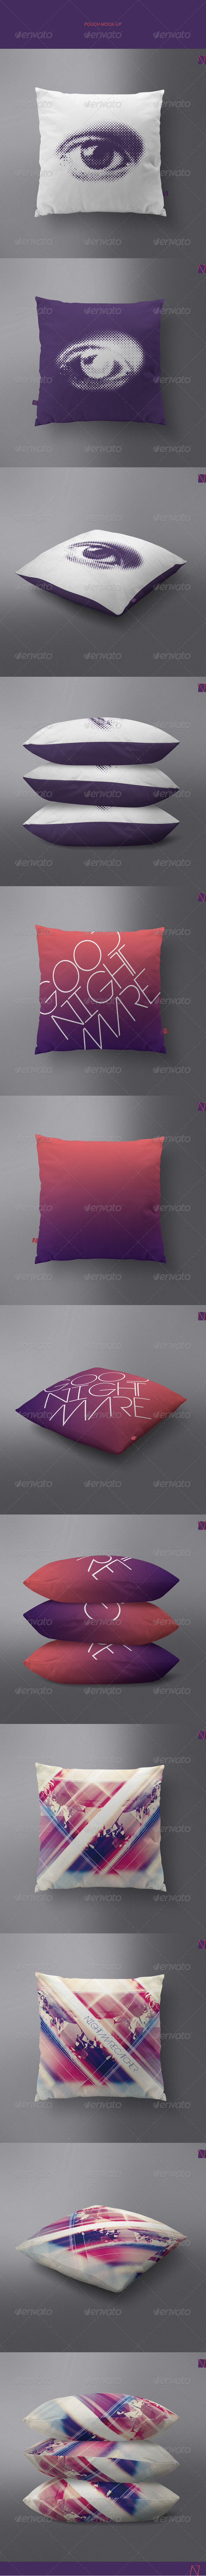 GraphicRiver Pillow Mock-up 7701316